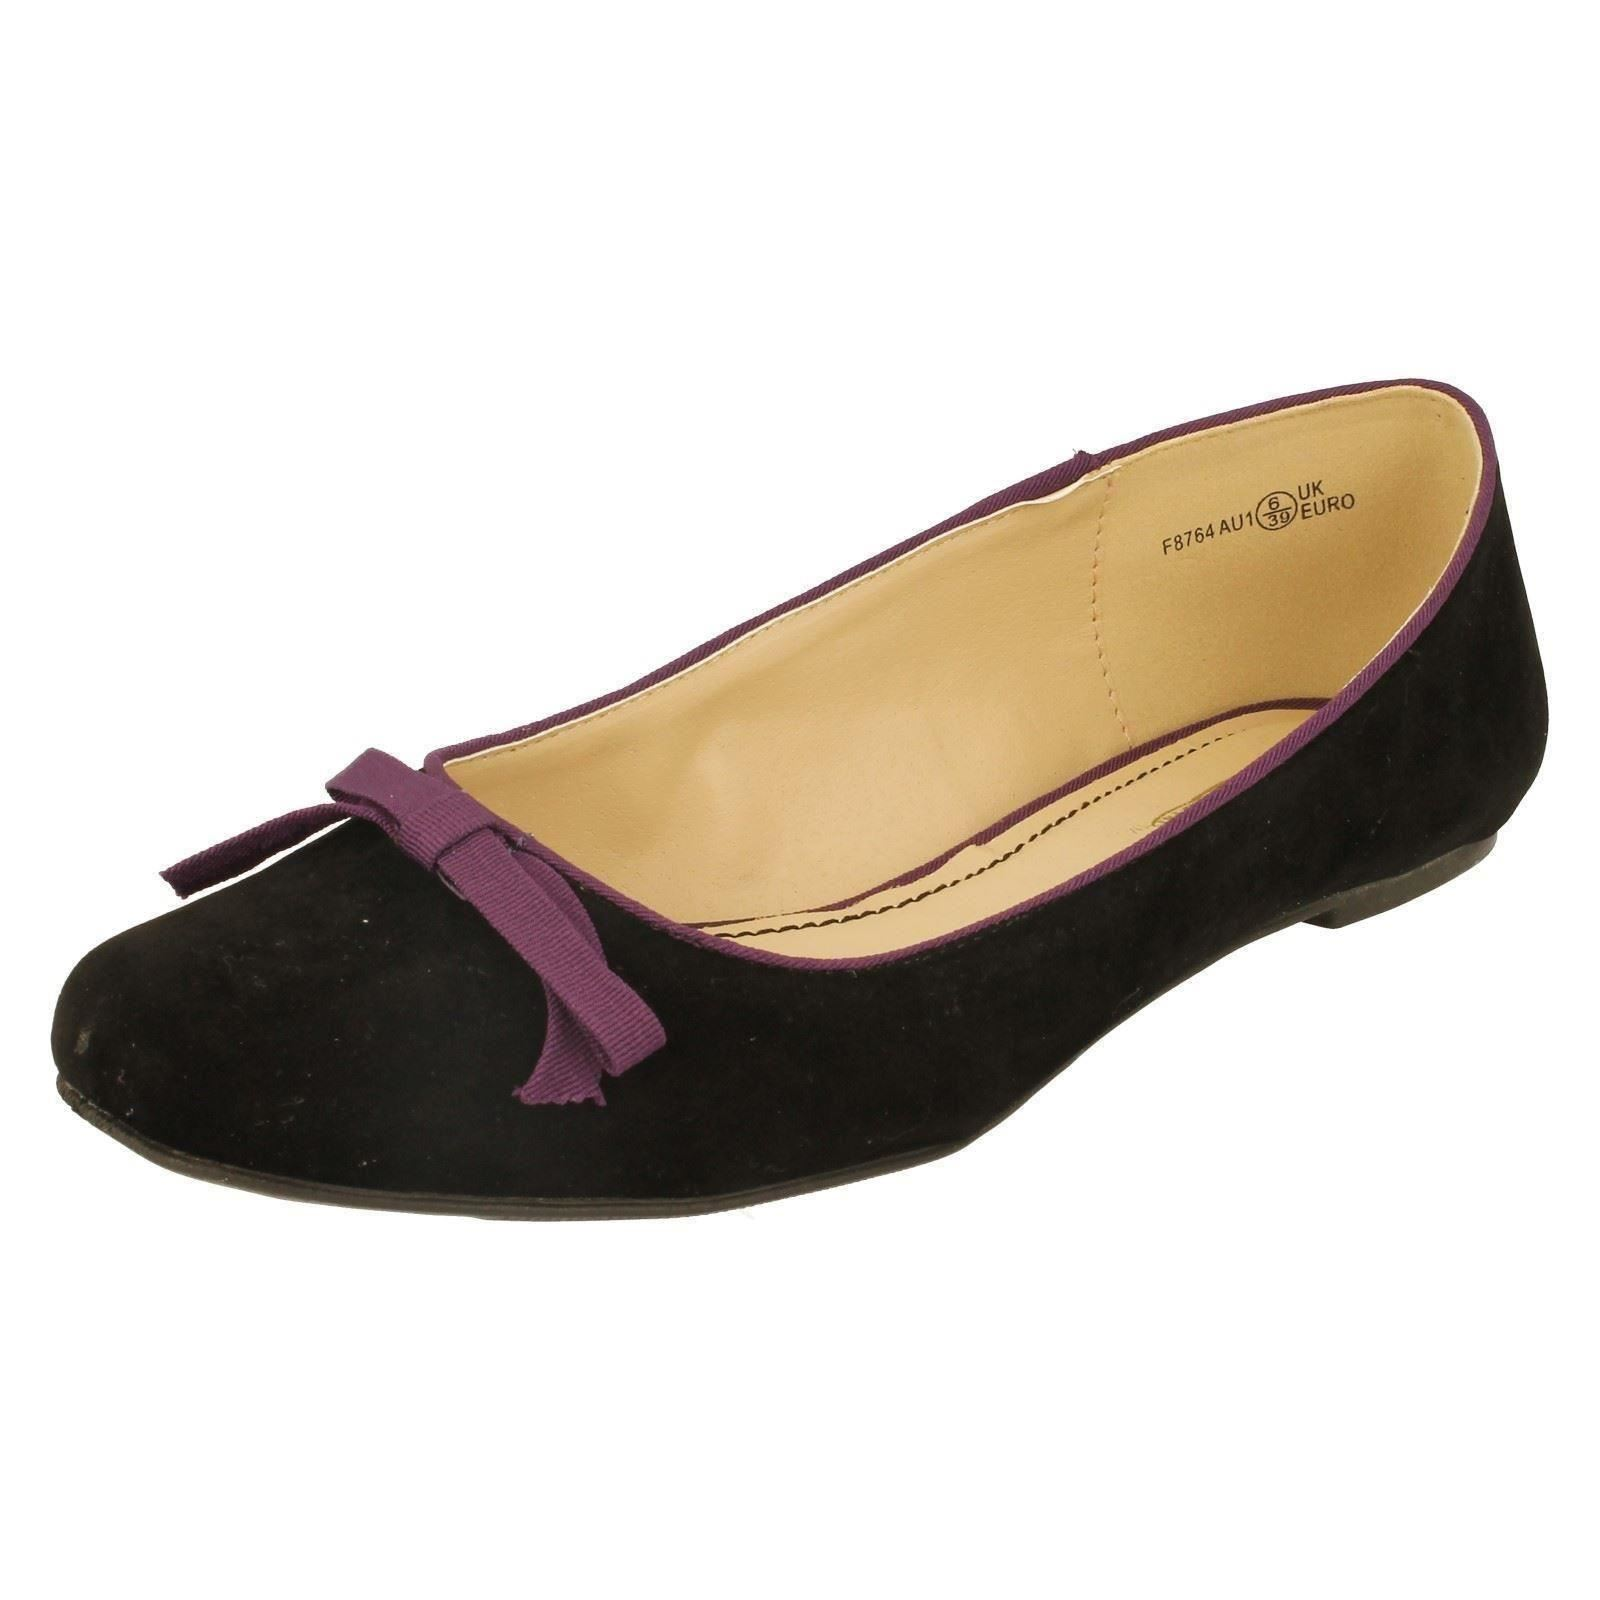 Damas Spot On Zapatos Estilo Estilo Ballet F8764-W